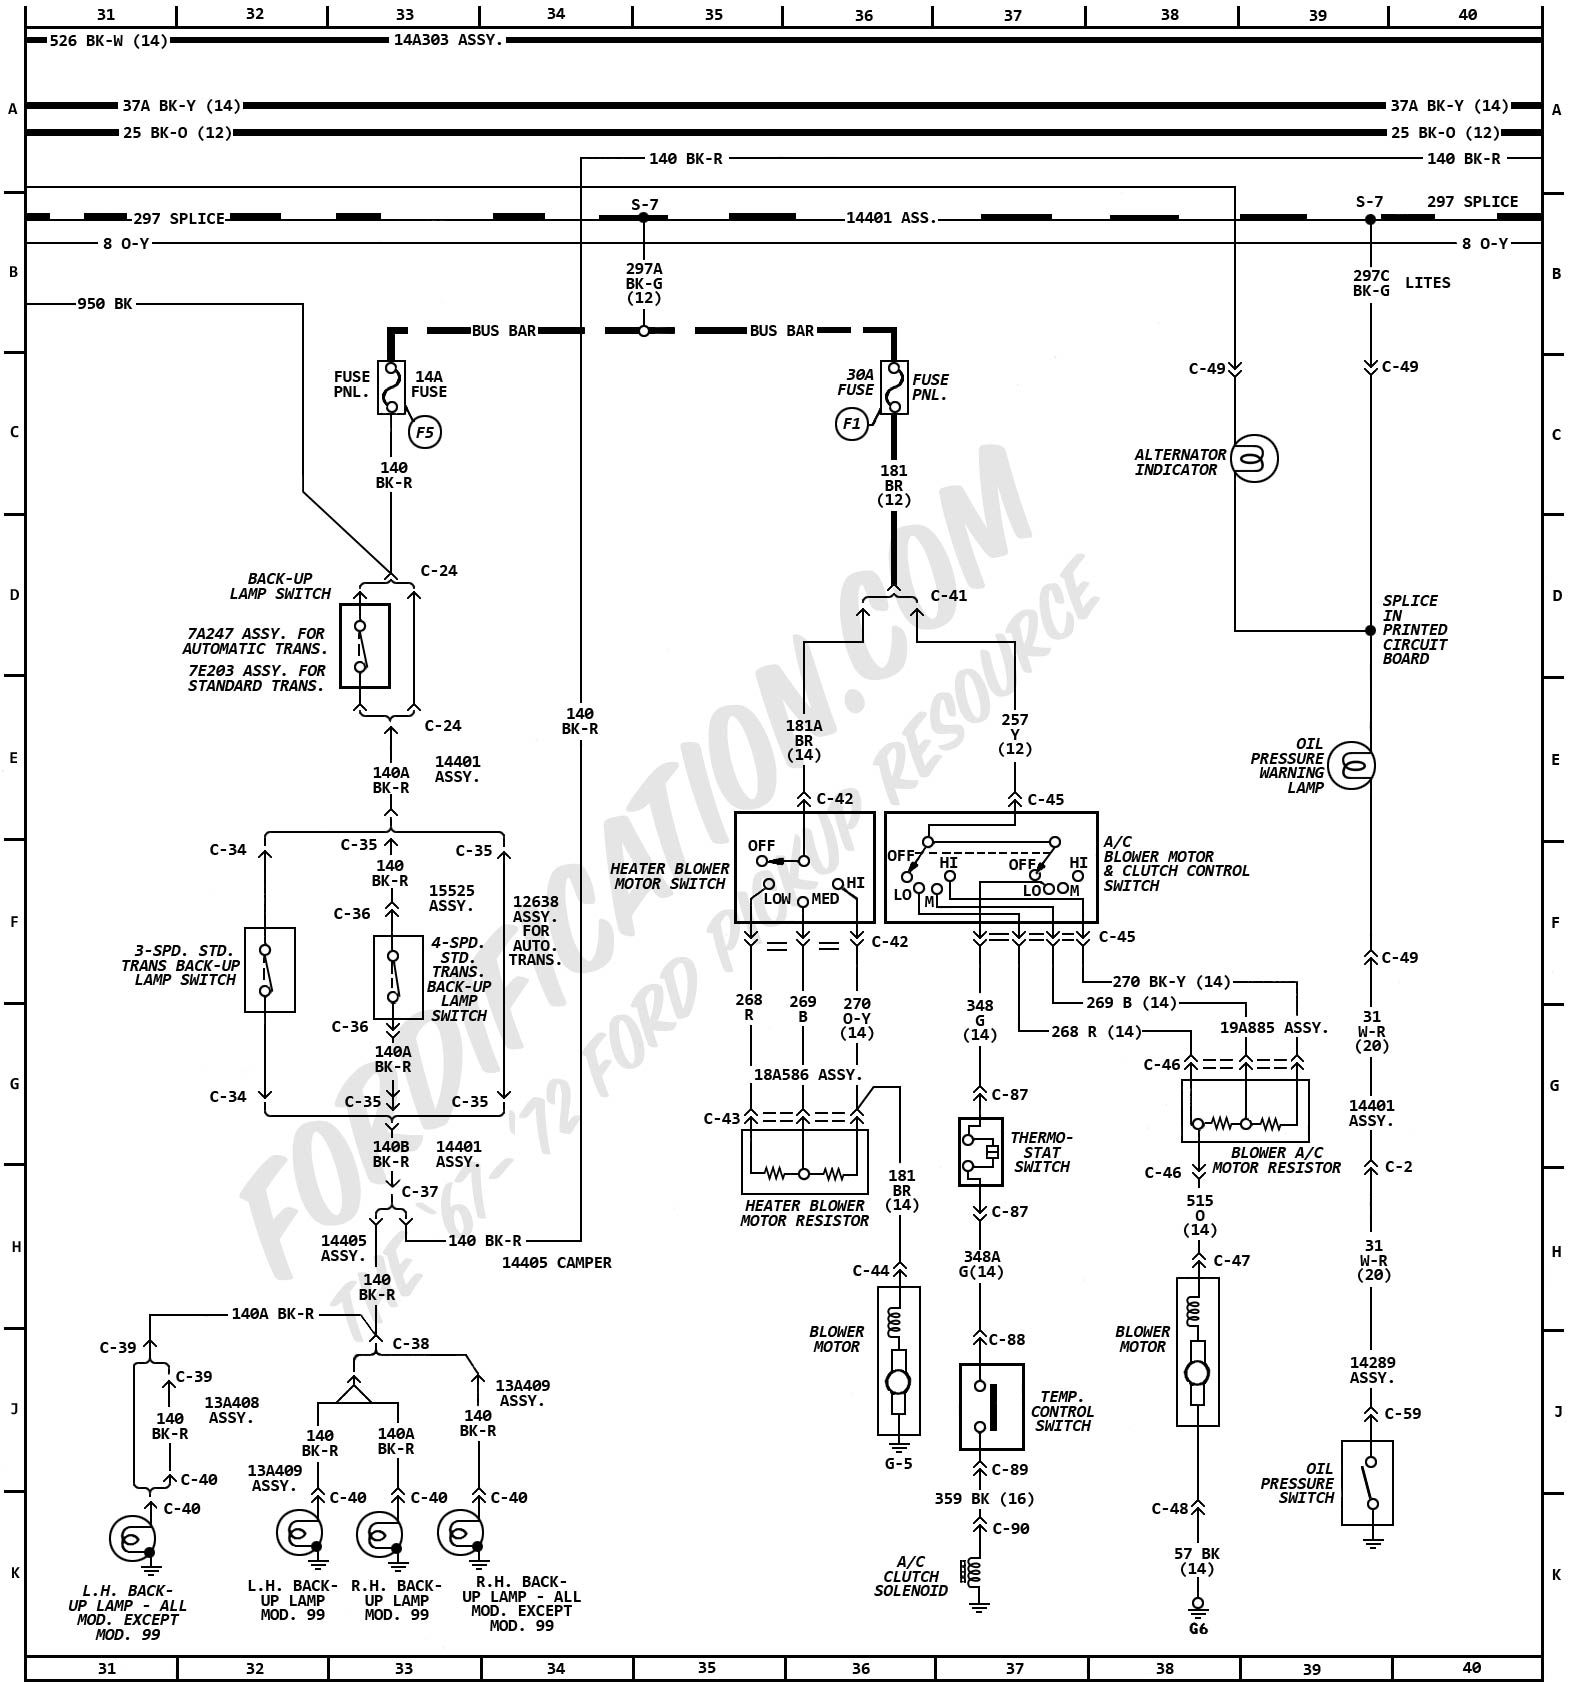 1972 Chevy Truck Wiring Diagram Colored Data Diagrams 1966 1973 Ford F100 Trusted Rh Dafpods Co